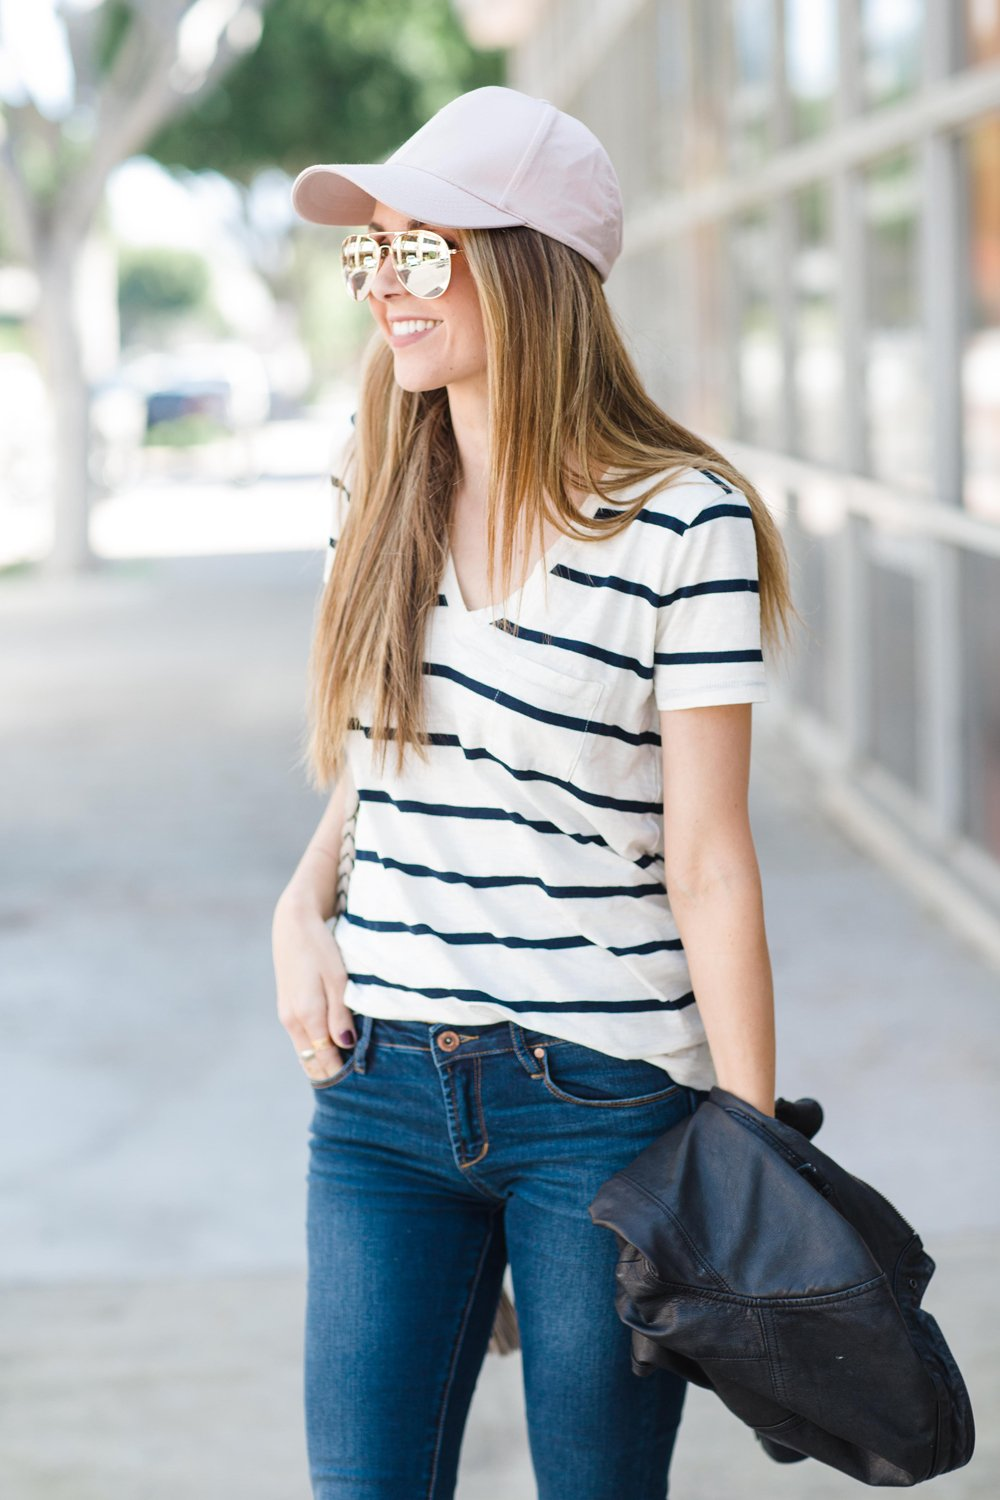 Merrick's Art Madewell Striped Tee